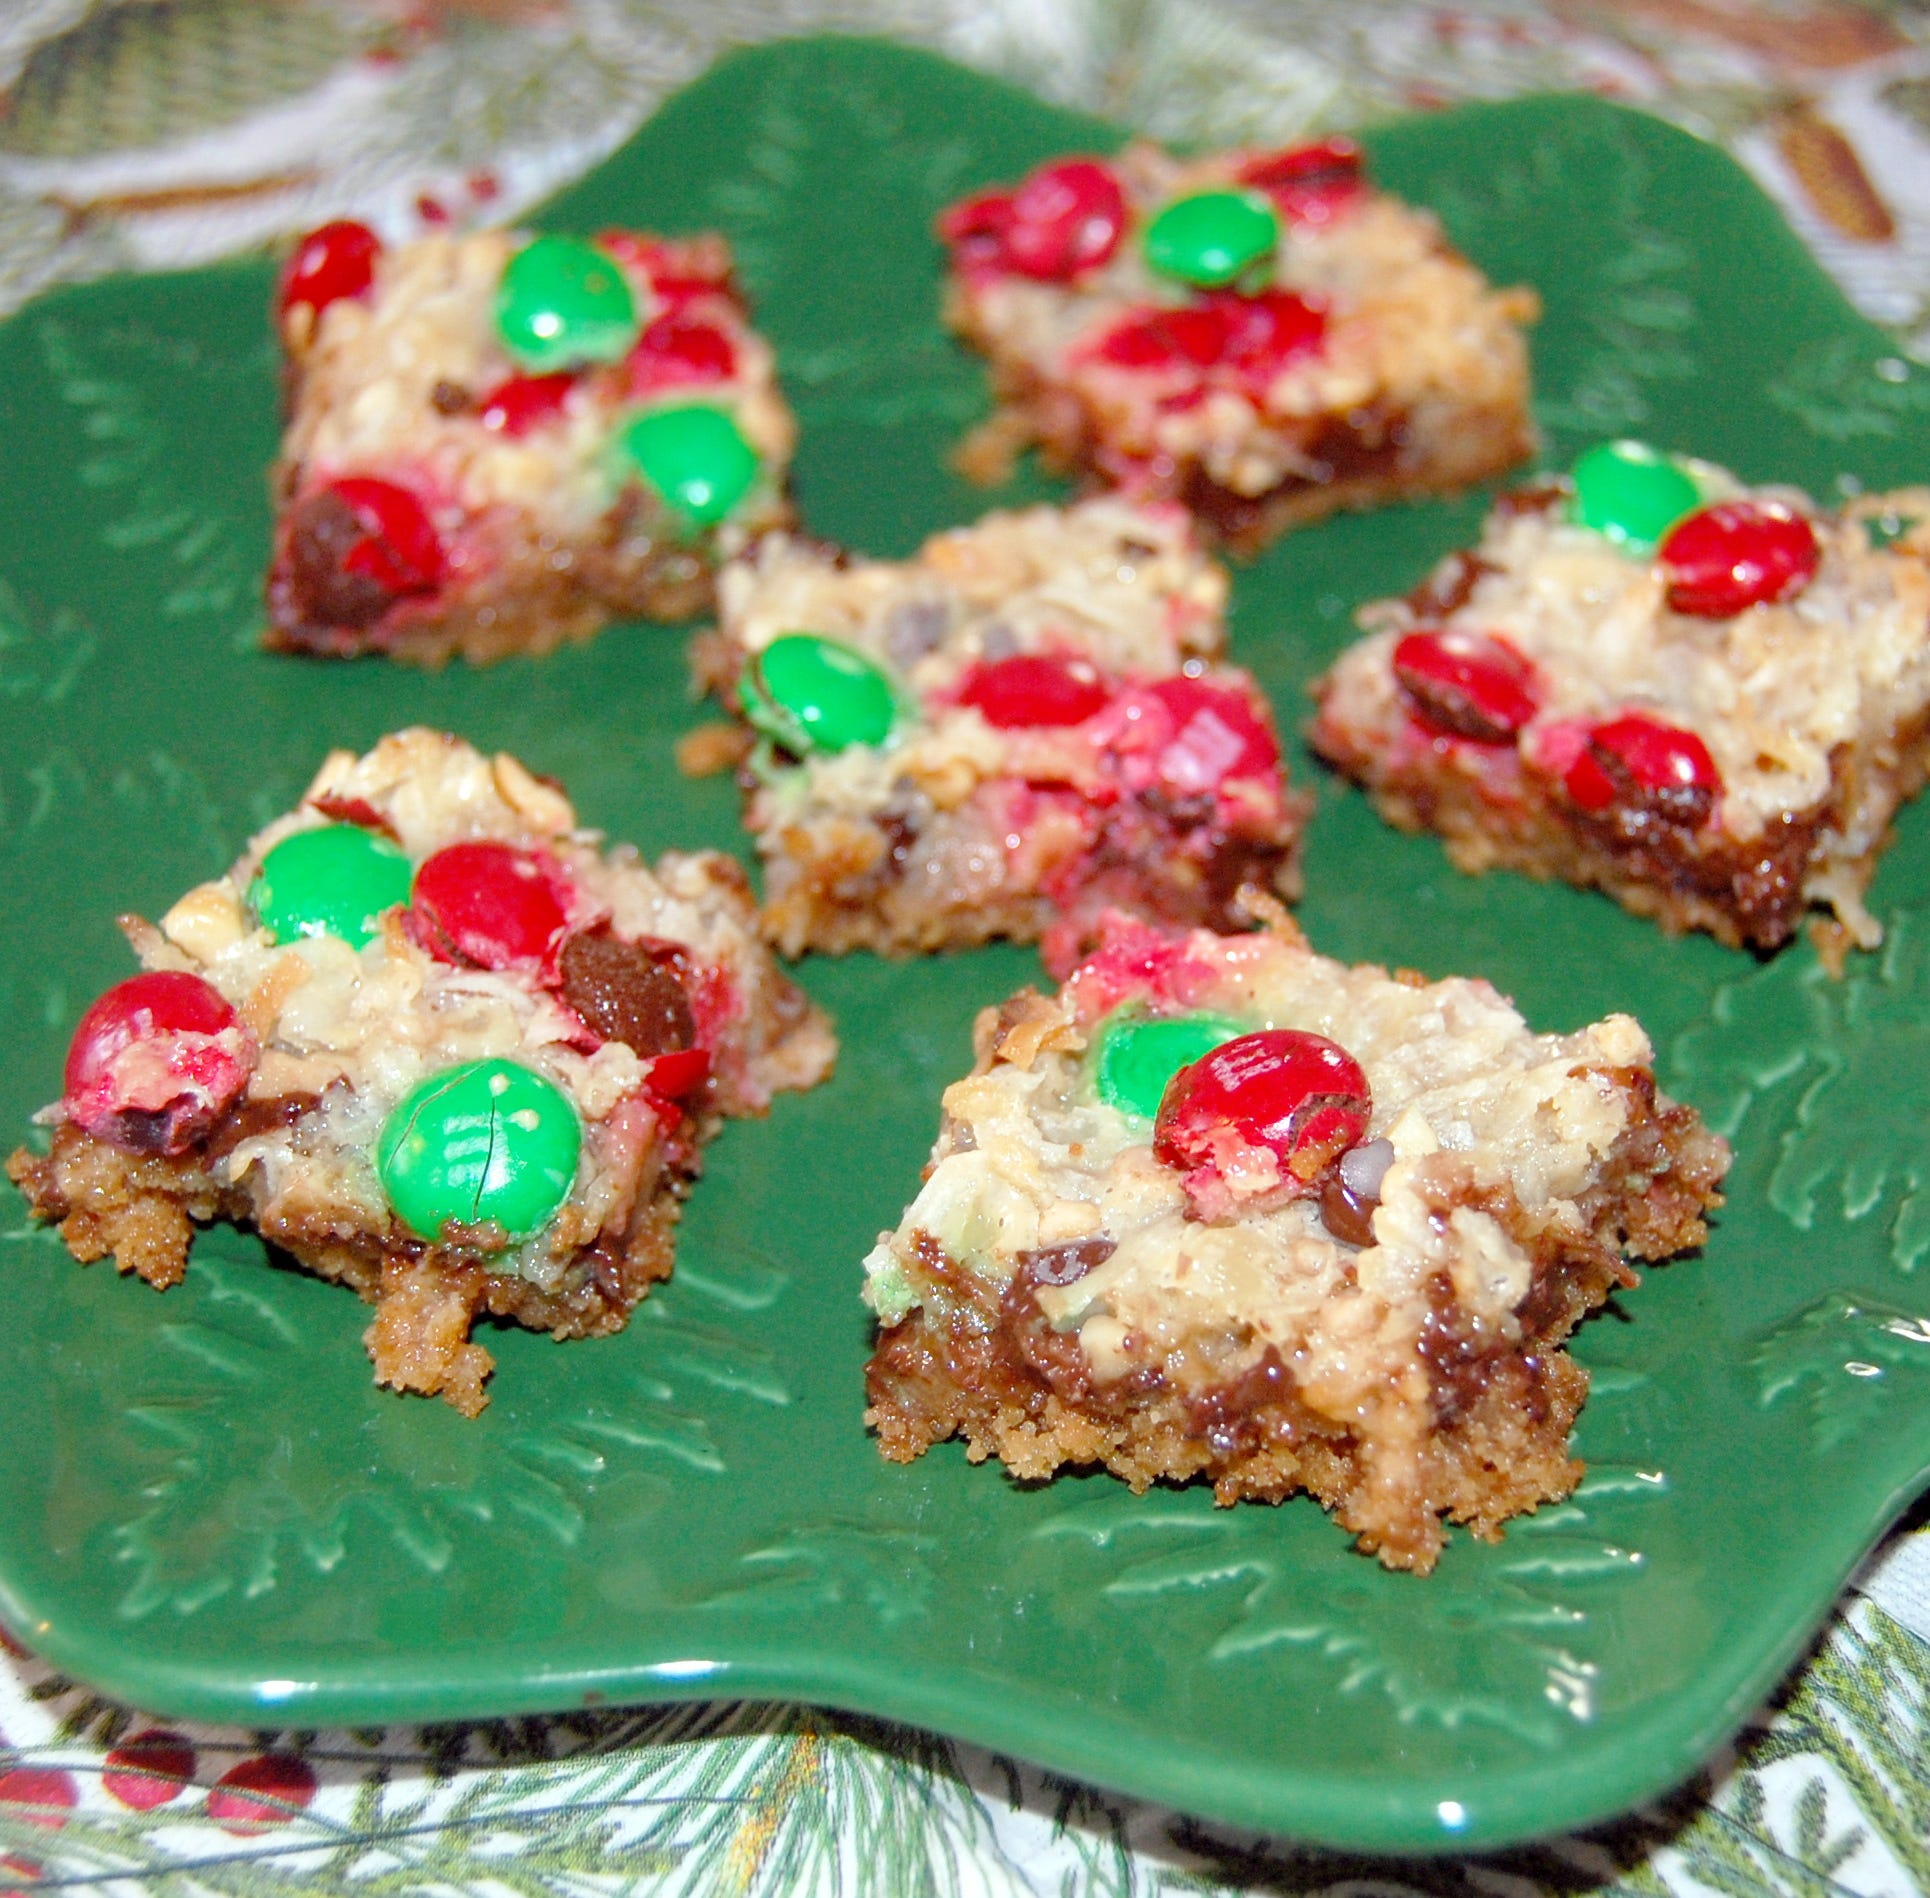 Christmas bars recipe an easy, festive treat | Sweet & Savory